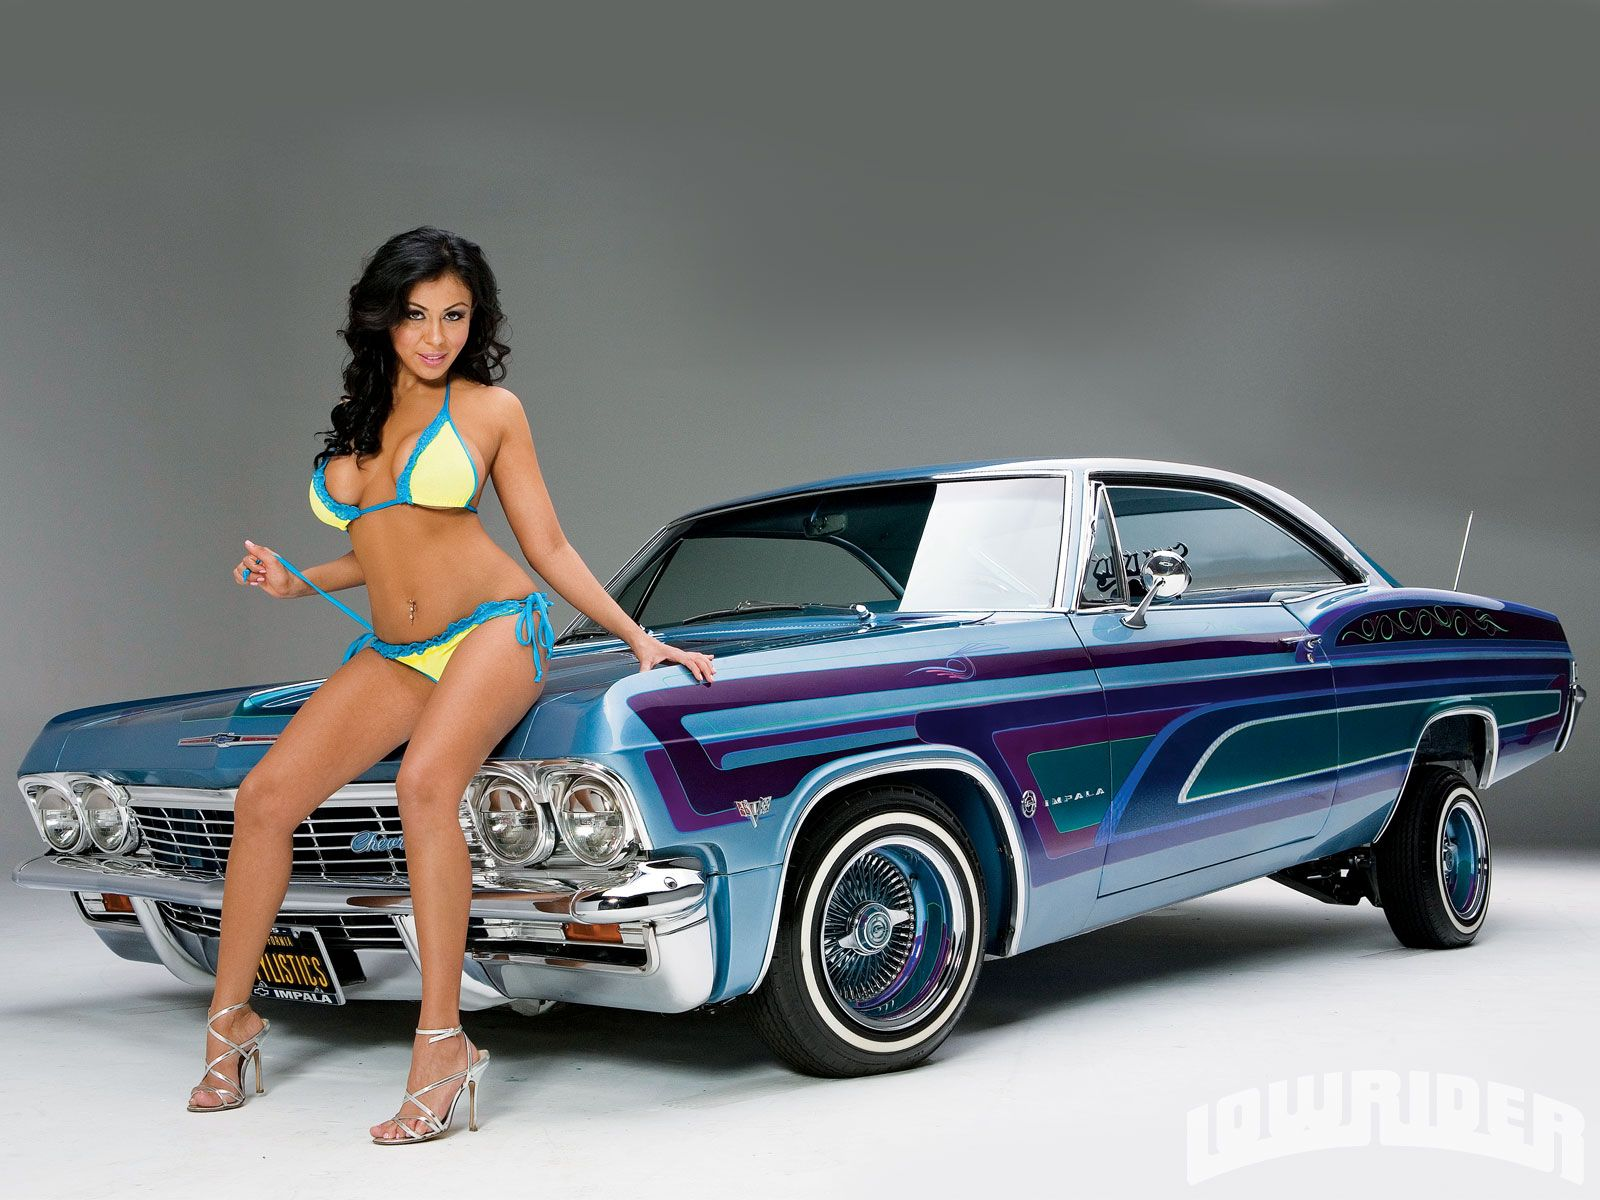 Girls  Lowriders On Pinterest  Lowrider, Hot Rods And Cars-6166